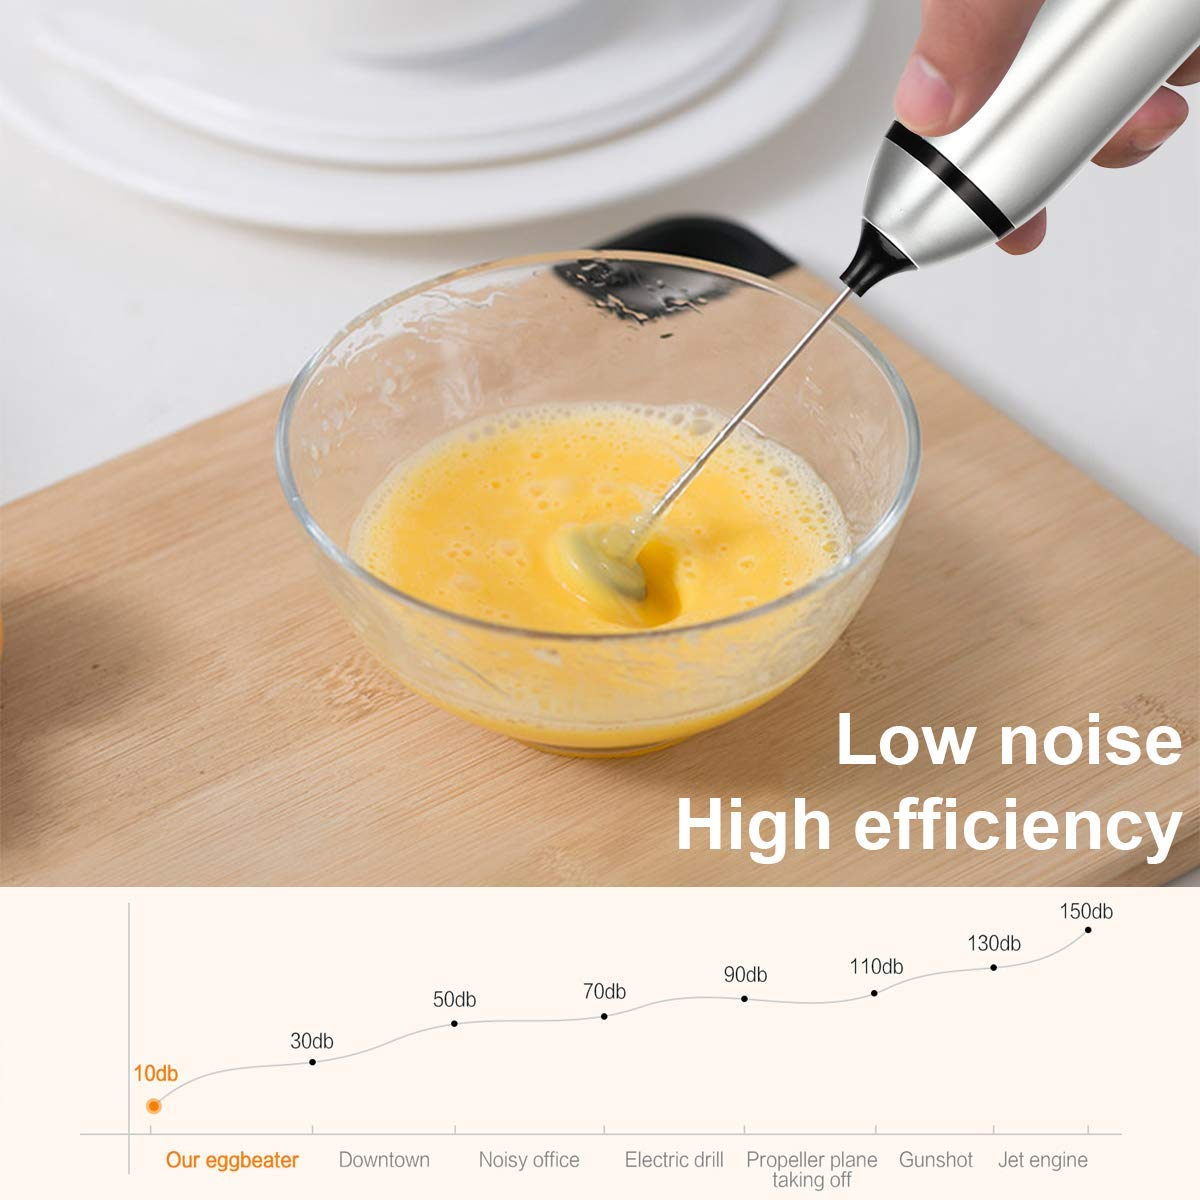 Hb917b4028be34989a116845f5f9ac859k YAJIAO USB Rechargeable Blender Milk Frother Handheld Electric Mixer Foam Maker Stainless Whisk 3 Speed for Coffee Cappuccino